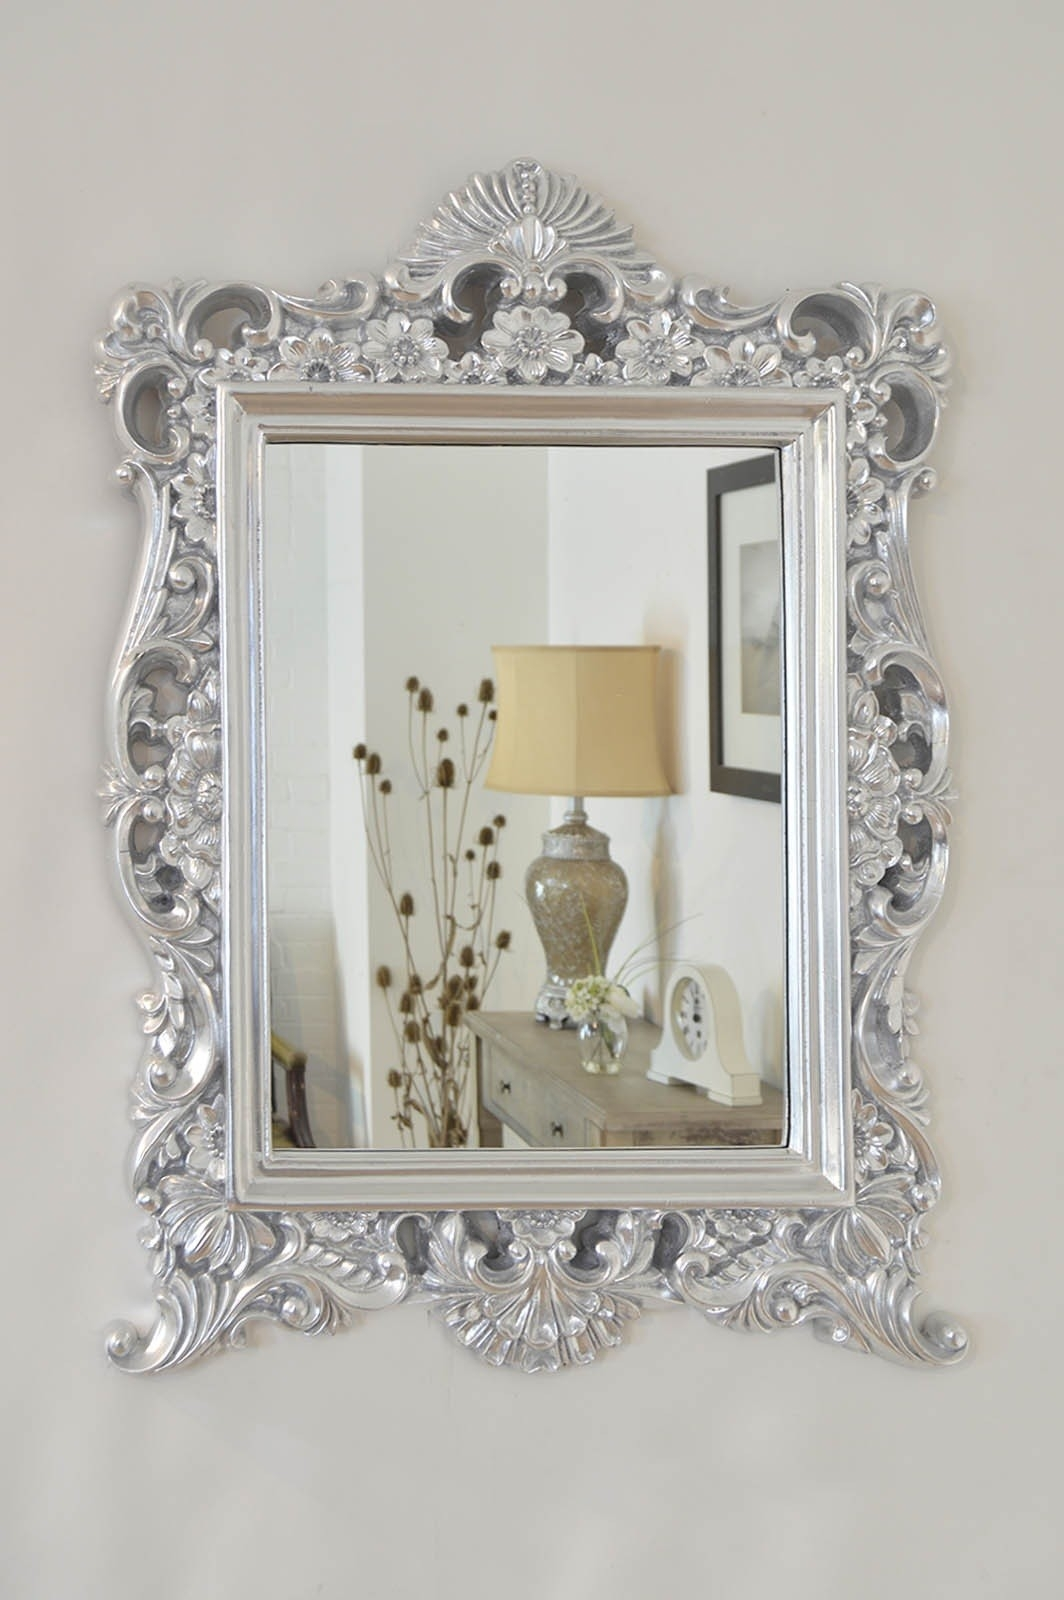 Large Silver Baroque Style Portrait Ornate Wall Mirror 2ft9 X 2ft1 Intended For Large Ornate Silver Mirror (Image 8 of 15)